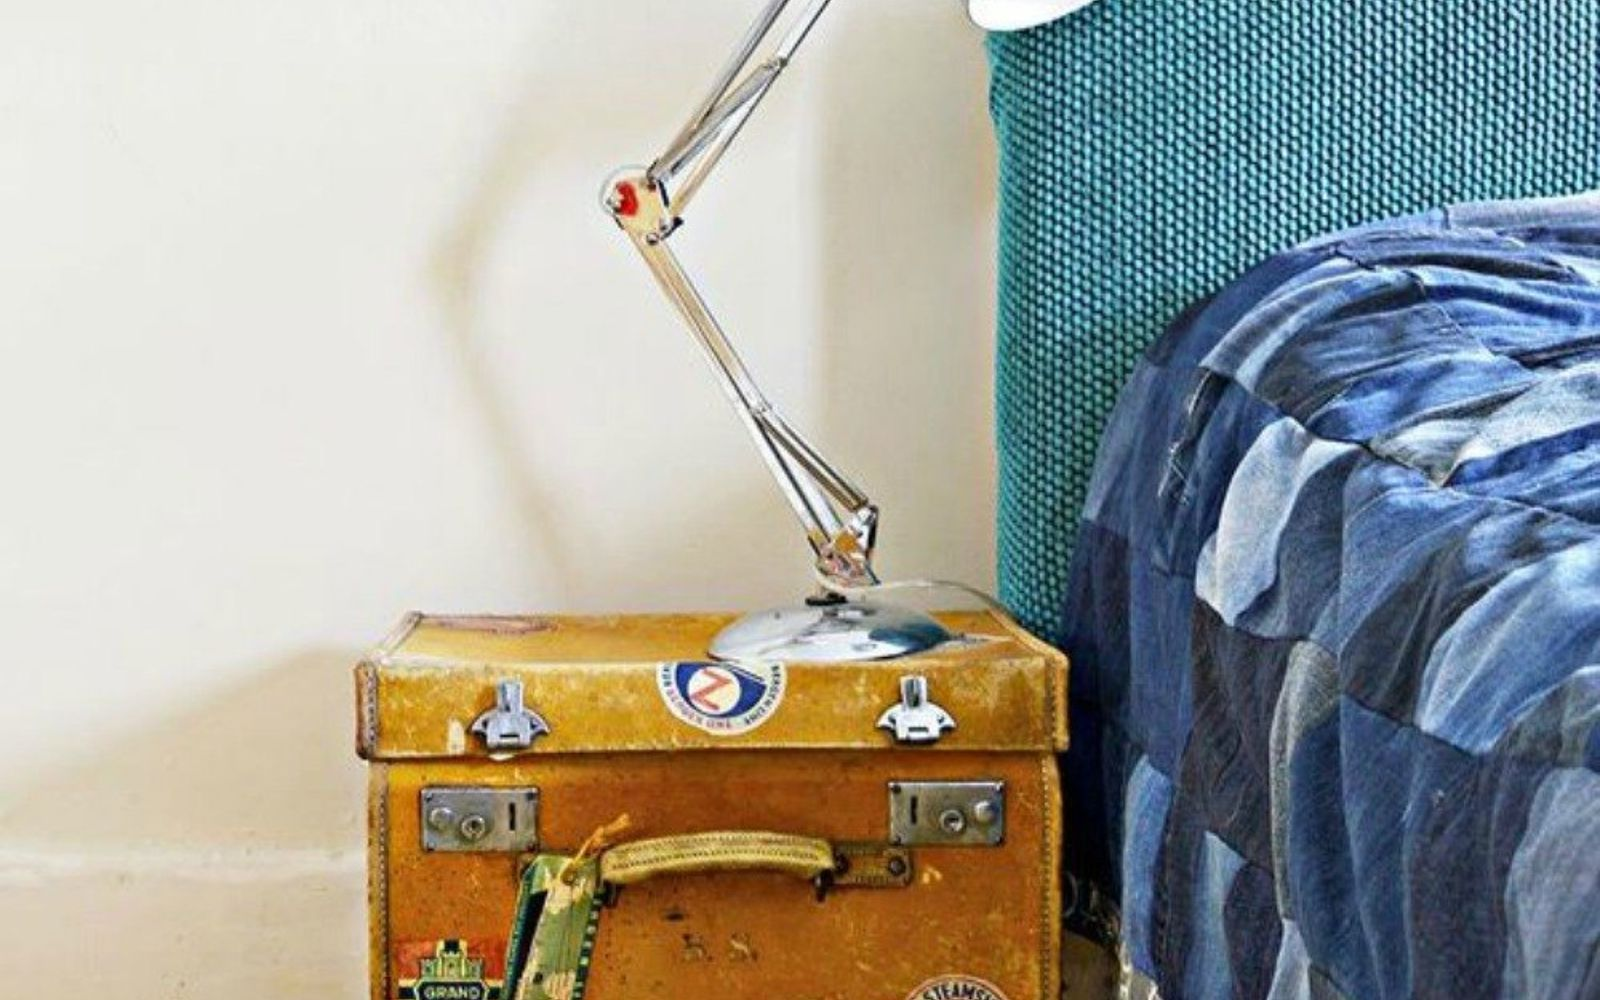 s don t throw out your old suitcase before you see these 15 clever ideas, Turn it into a funky side table